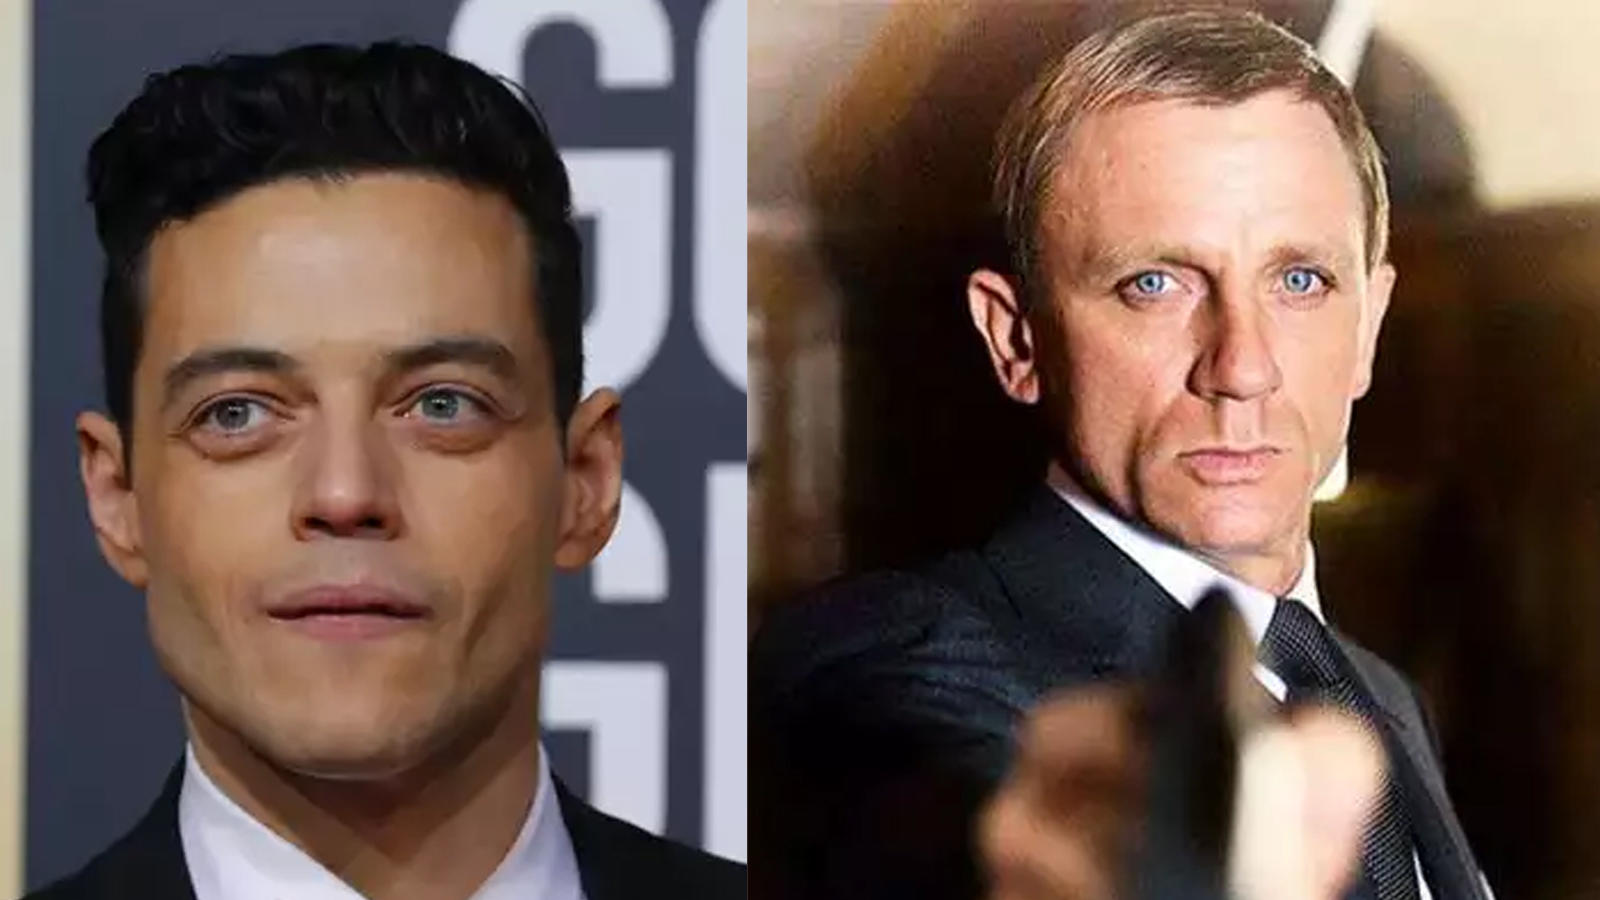 Rami Malek joins cast of new James Bond movie